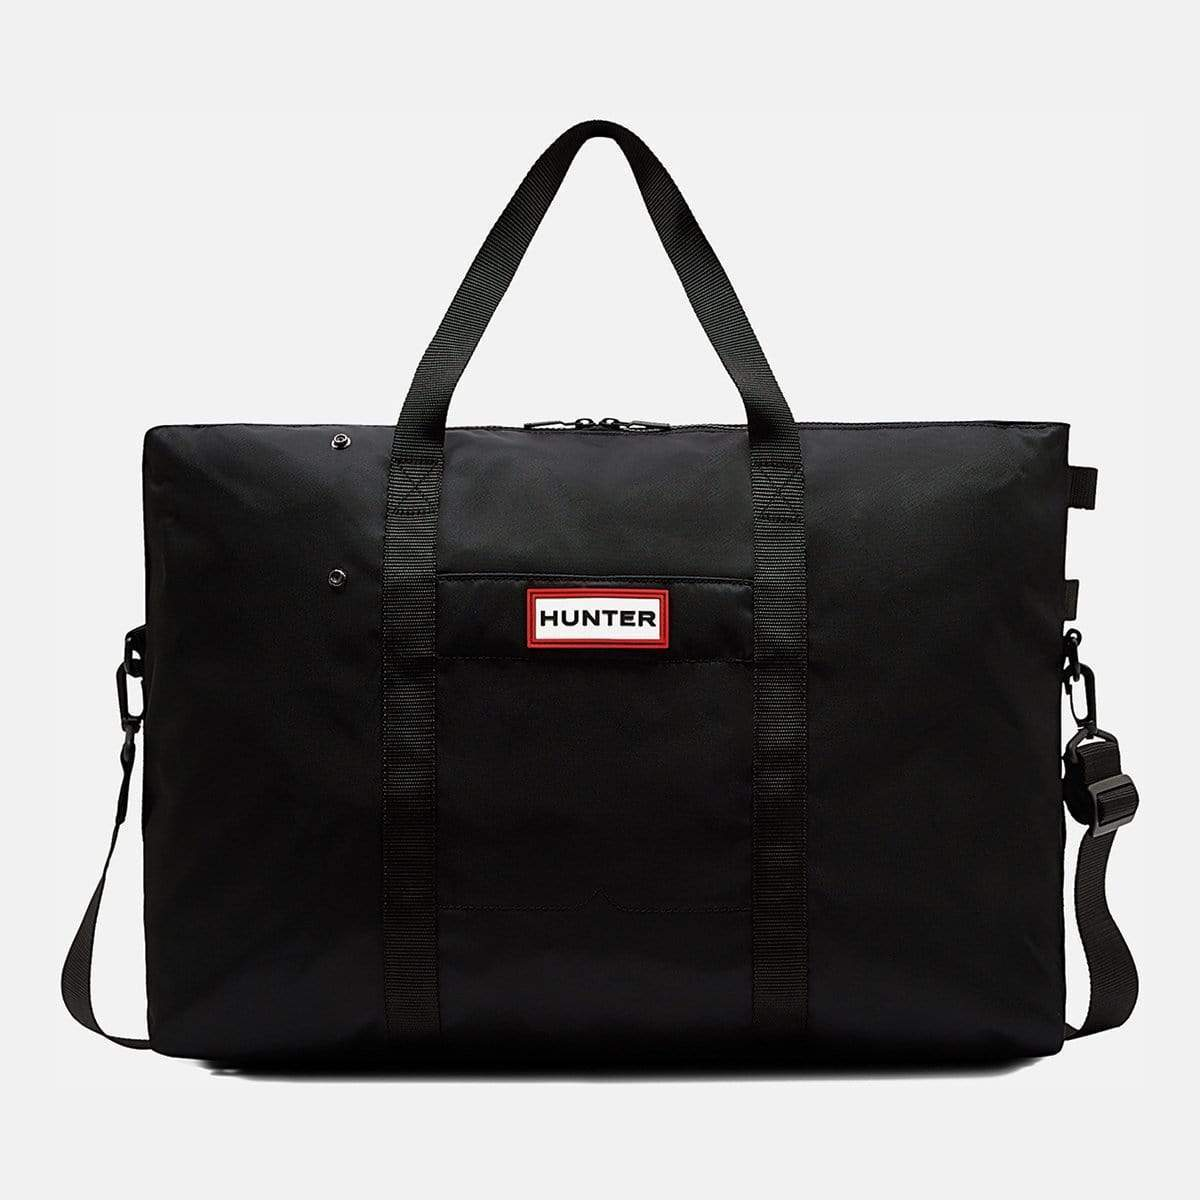 Hunter Accessories One Size / Black Original Nylon Weekender Black